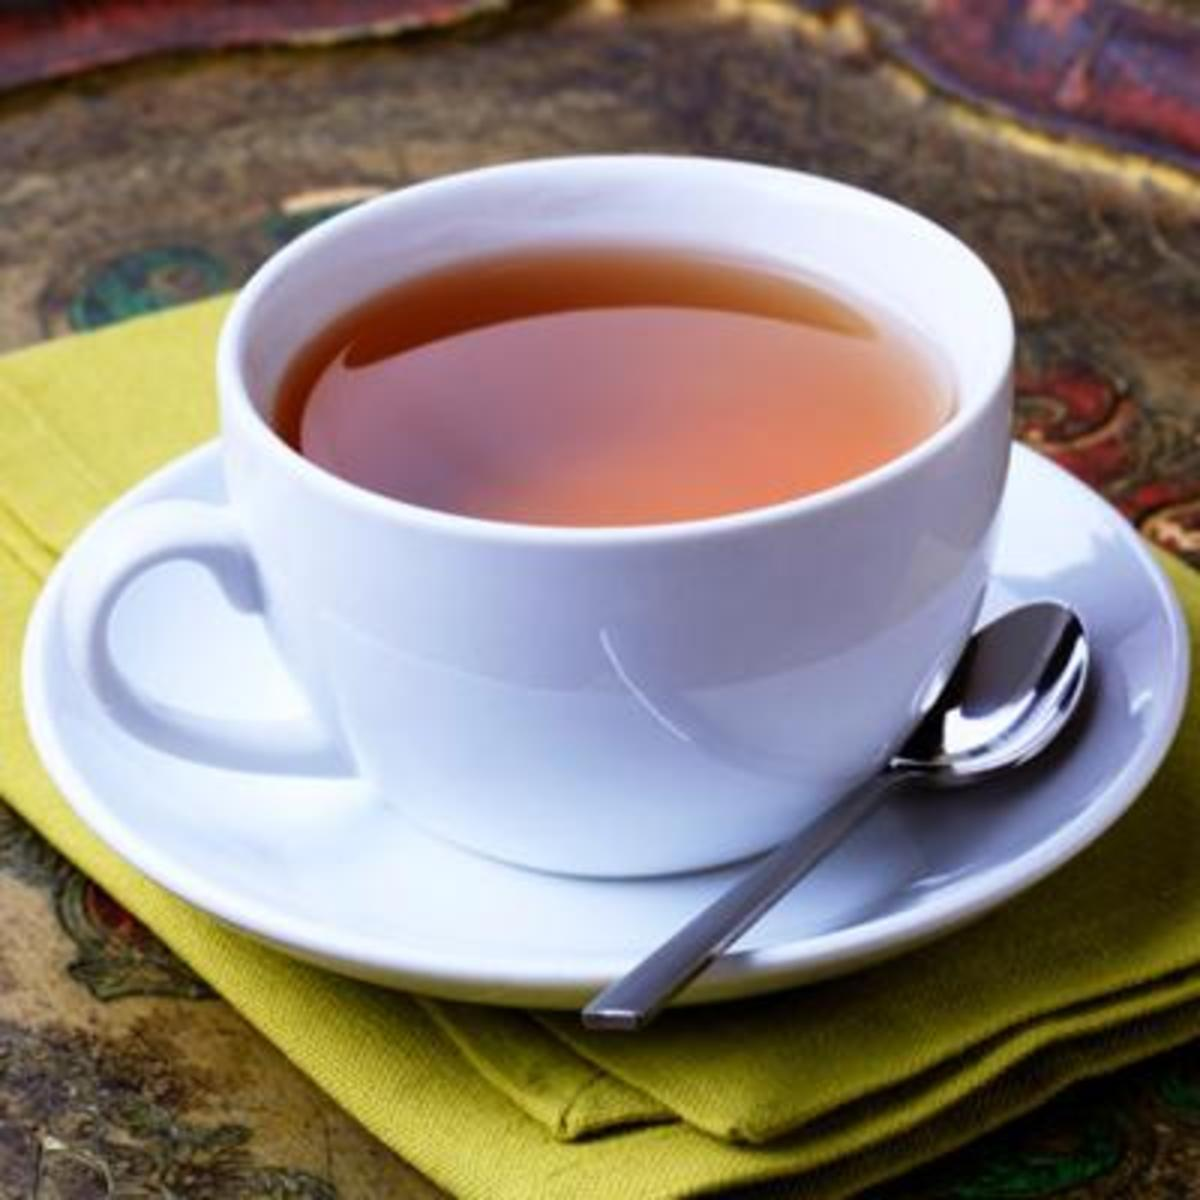 Drinking licorice tea can help you grow healthier hair!